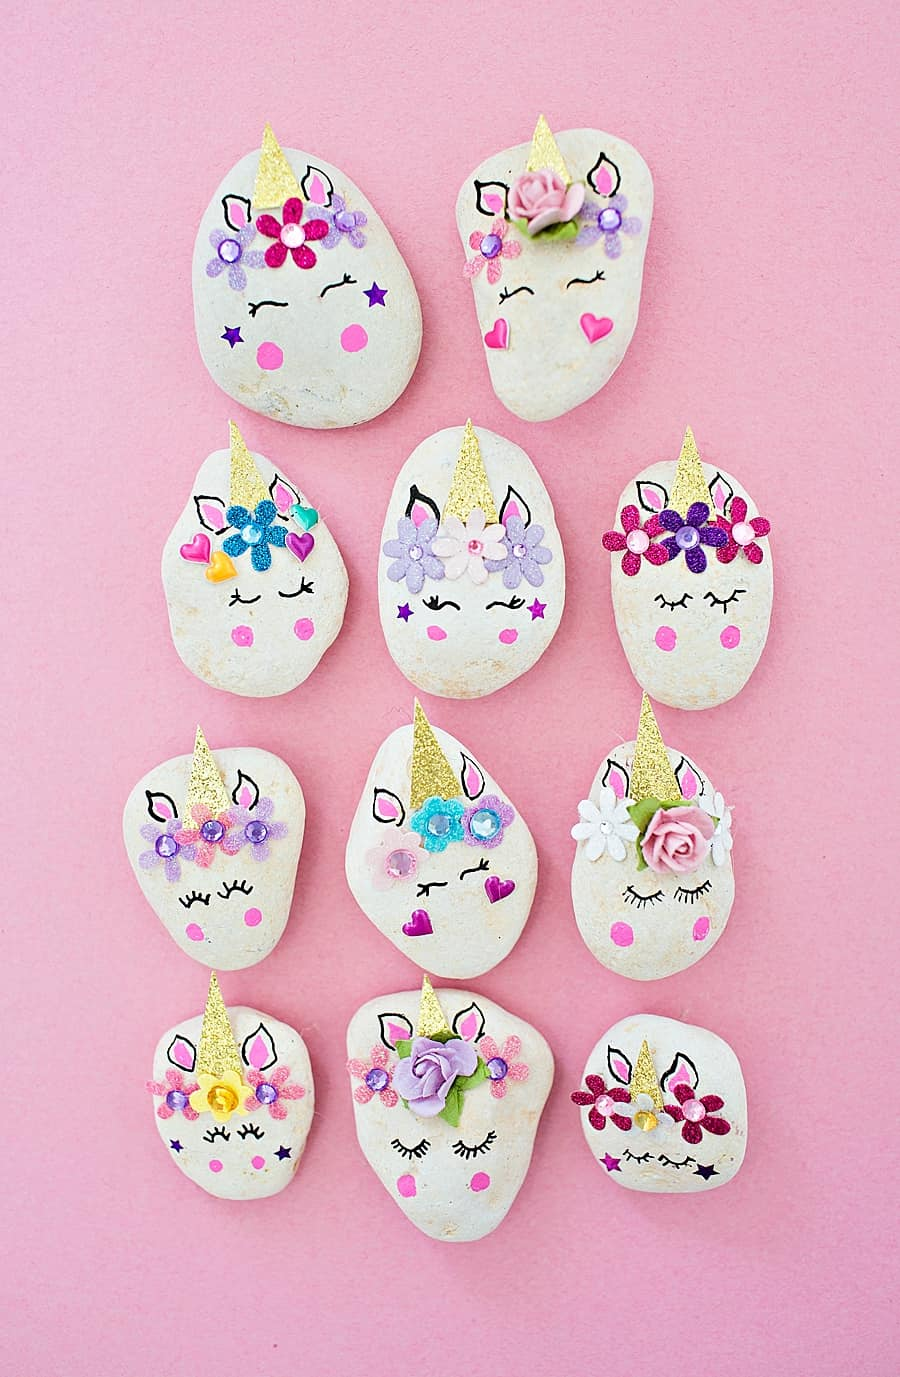 ]DIY Unicorn Rocks! Cute and easy kids craft idea! #diy #kidscraft #unicorndiy #unicorn #unicorntheme #unicorncraft